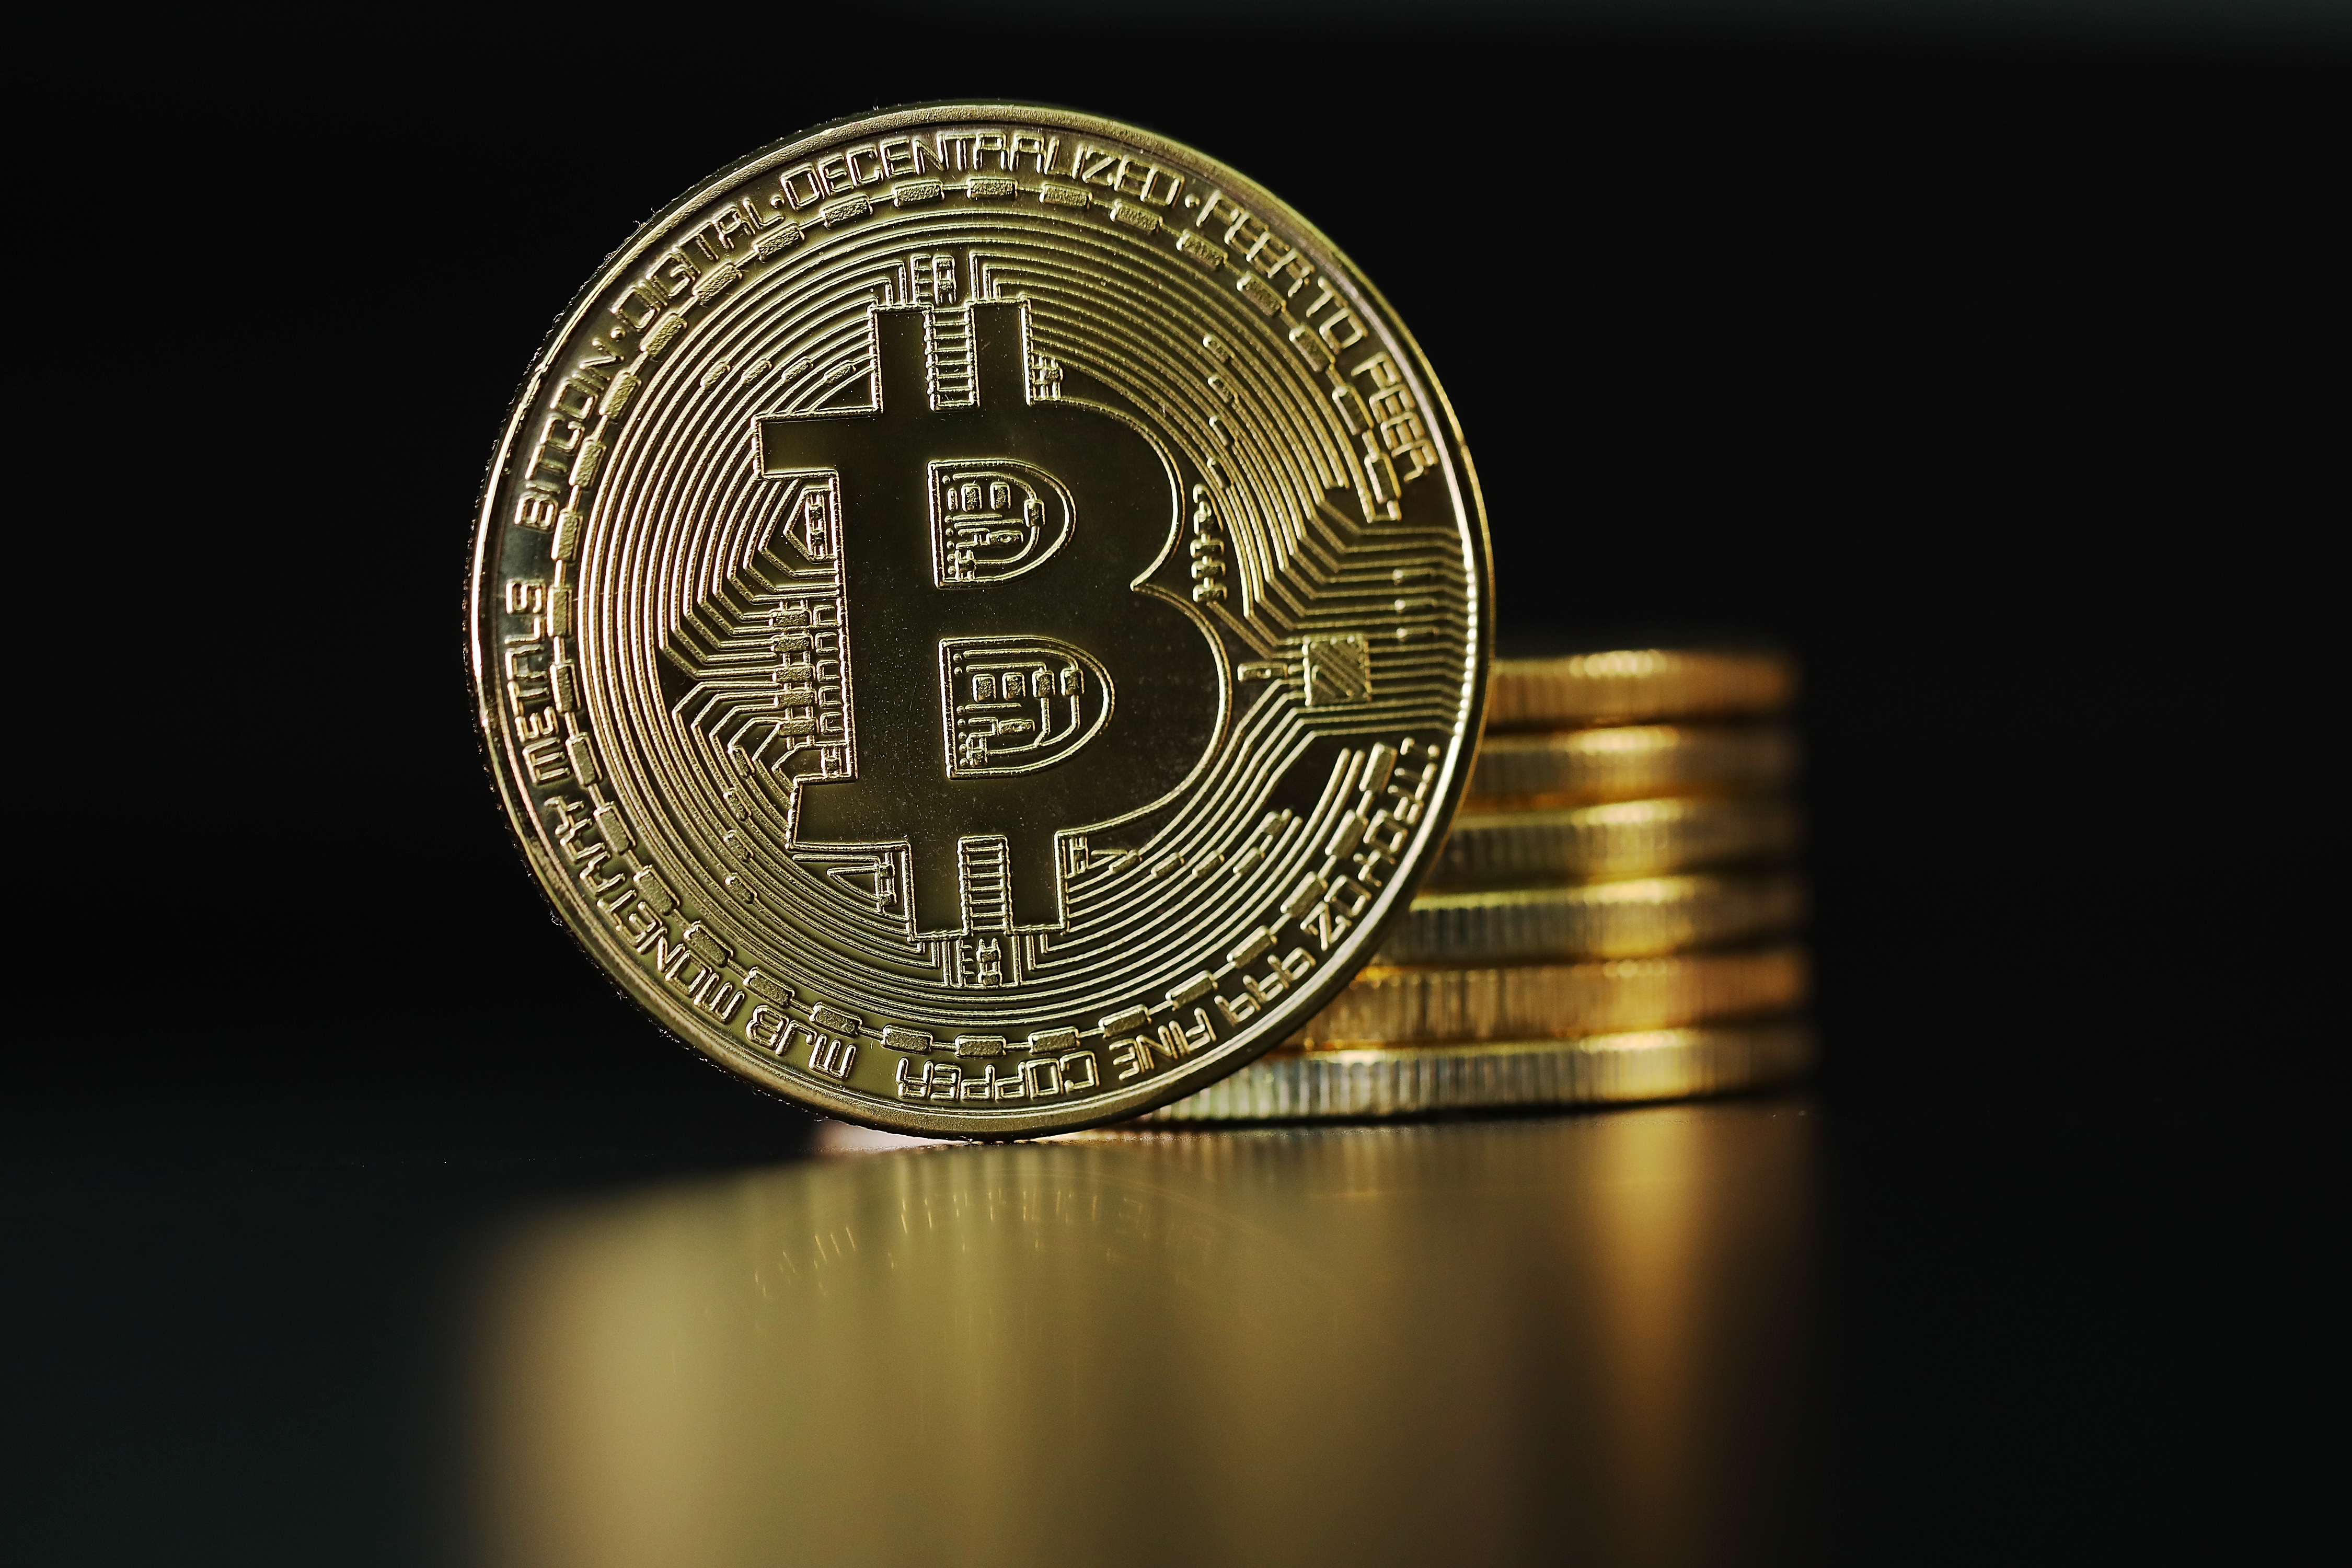 """A bitcoin cryptocurrency """"coin"""" in front of a stack of coins"""